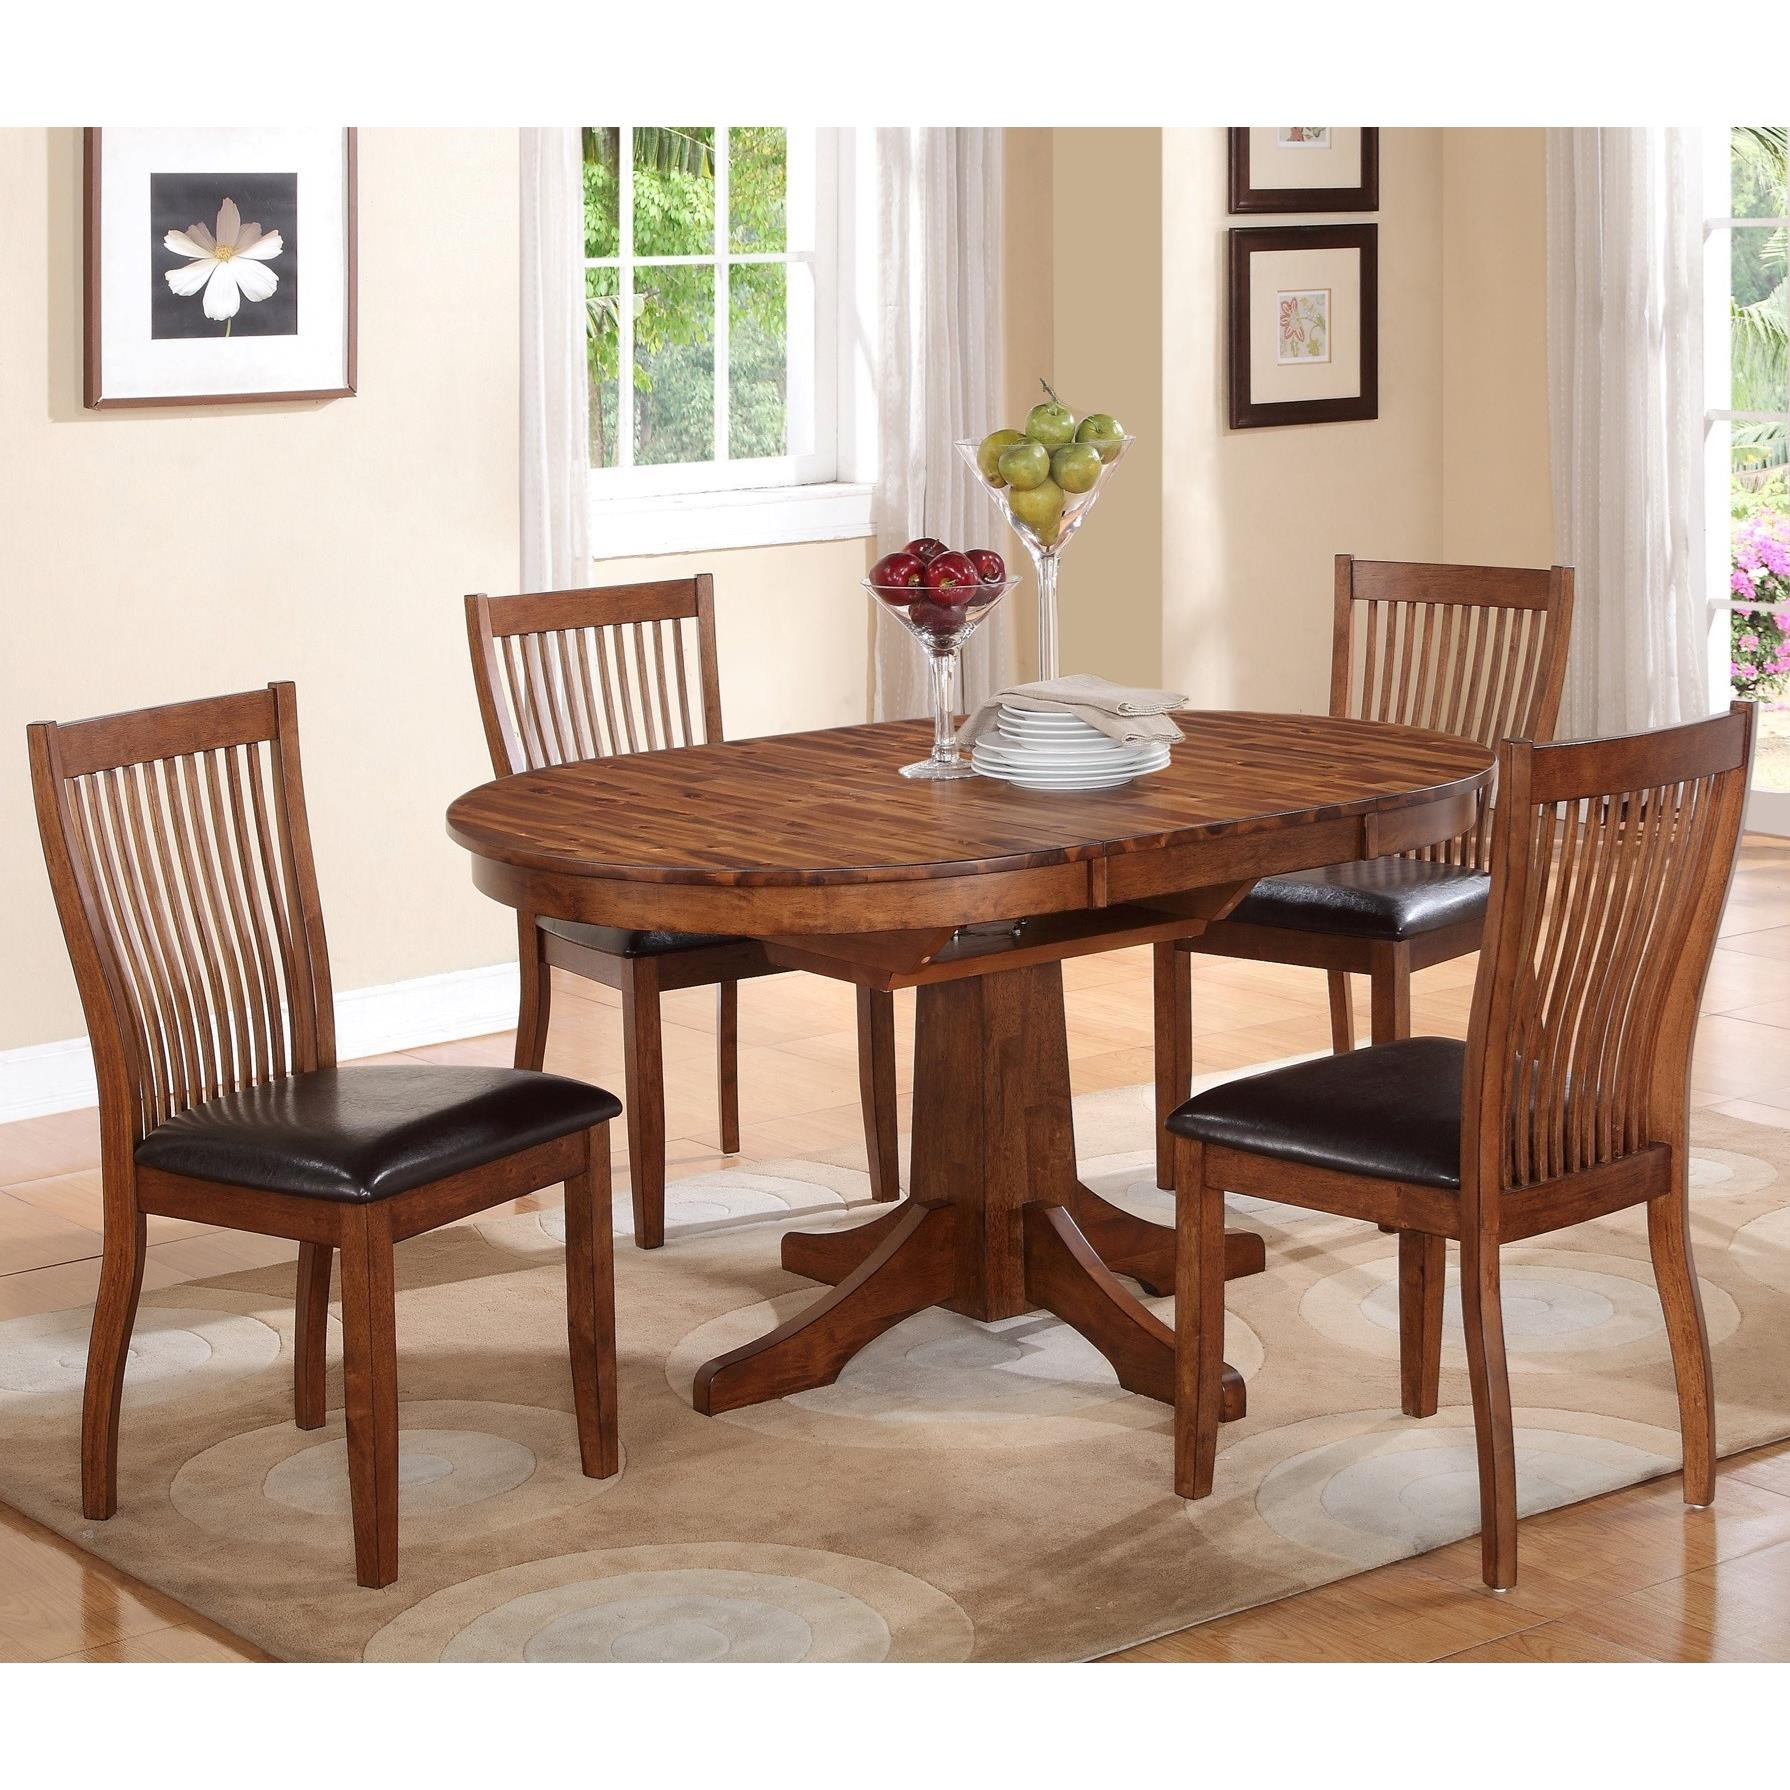 Round Dining Set With Leaf: Winners Only Broadway 5 Piece Round Table Dining Set With